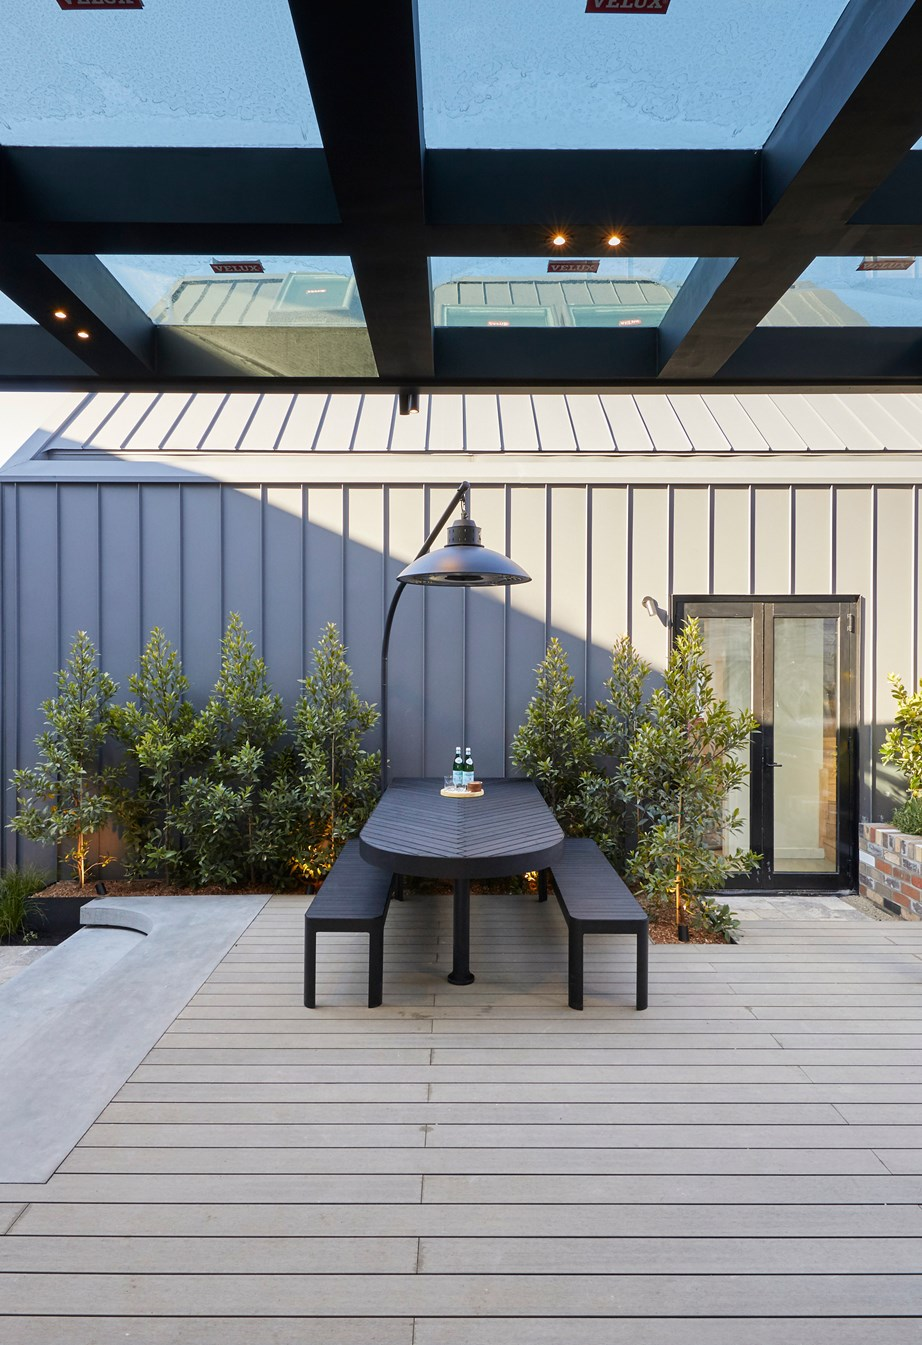 """**Week 12, Backyard and Pool** Sarah and George were awarded a perfect score of 30/30 for their multifunctional outdoor area and backyard. """"To deliver this much amenity, and style, and value – this is a selling point,"""" said Darren."""